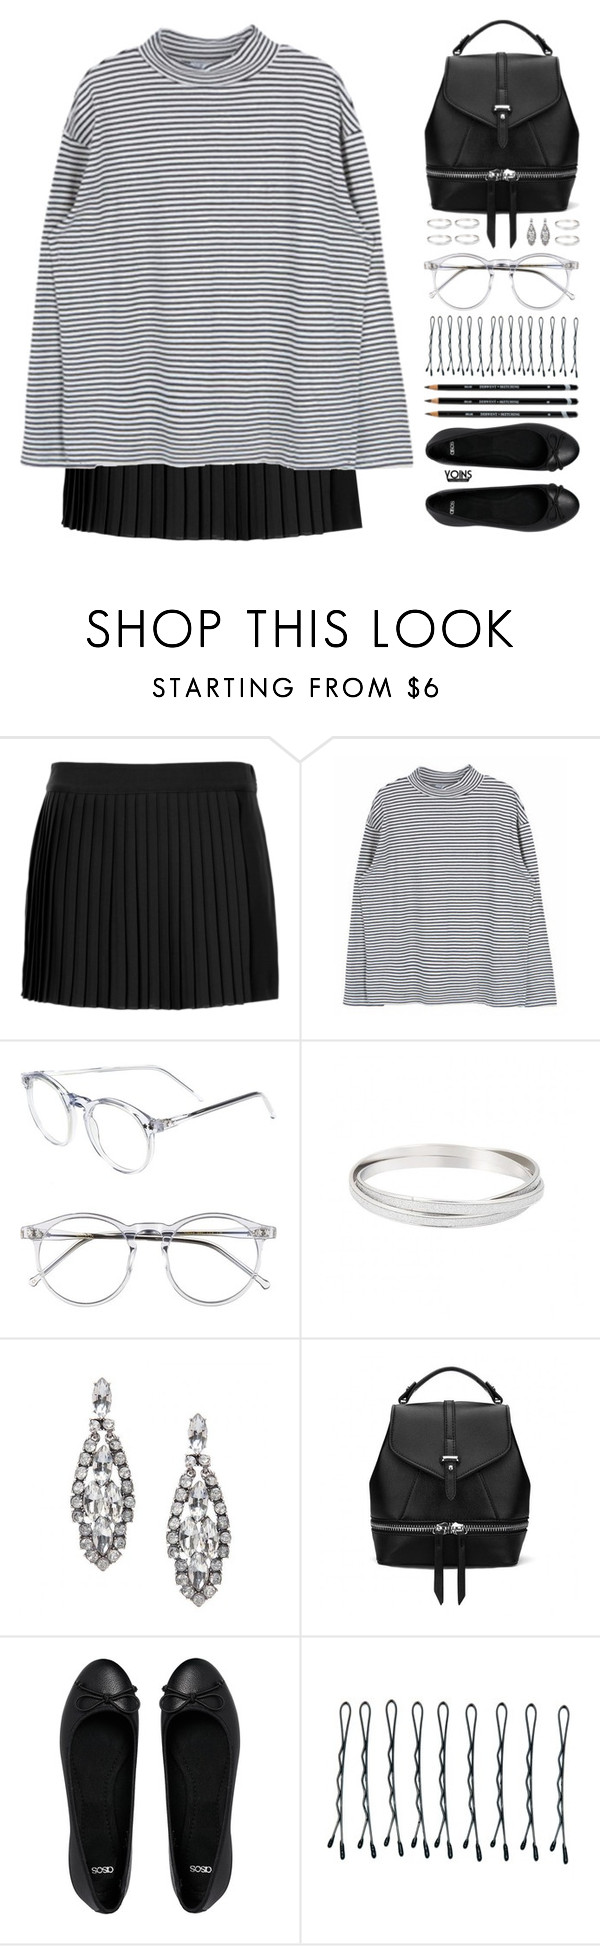 """about mine"" by theglampedia ❤ liked on Polyvore featuring Topshop, Wildfox, ASOS, BOBBY, stripes, pleatedskirts, yoins, yoinscollection and loveyoins"